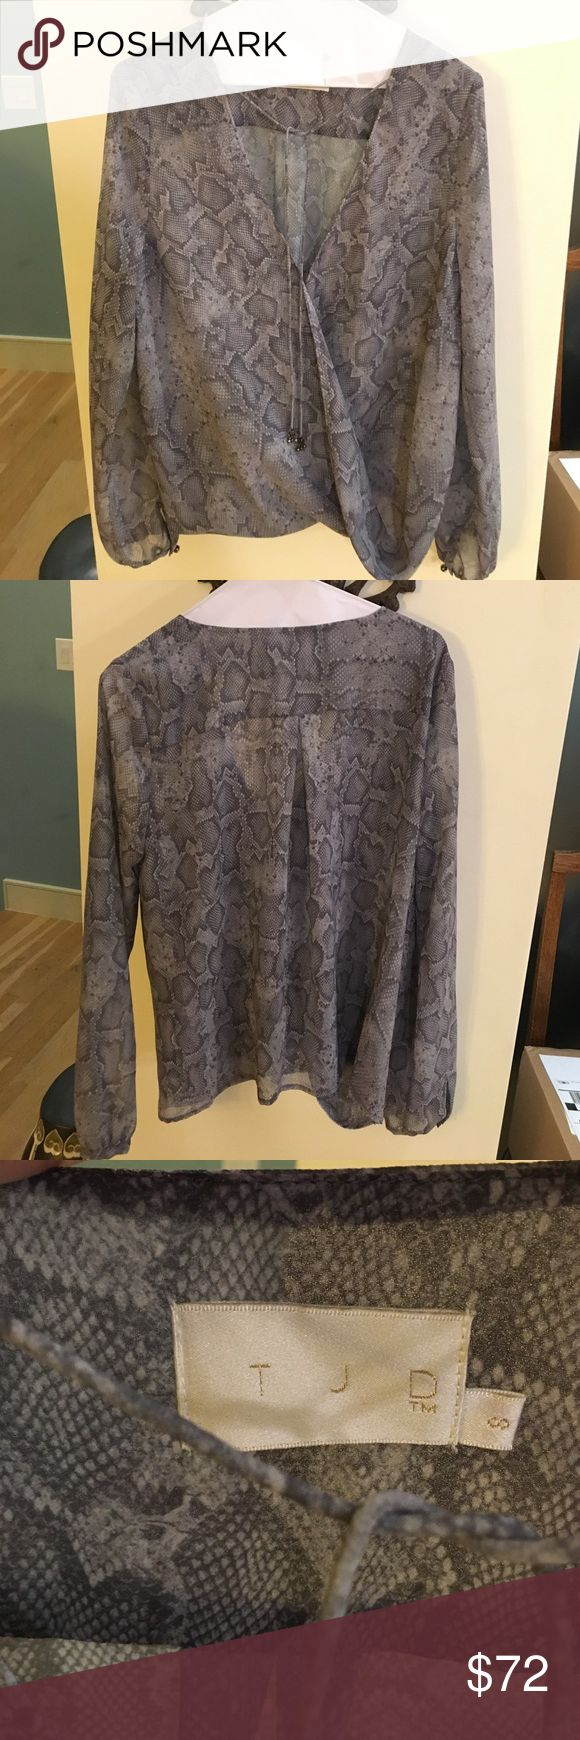 Jetset Diaries Medusa Snake Skin Printed Blouse Size small never been worn. Tops